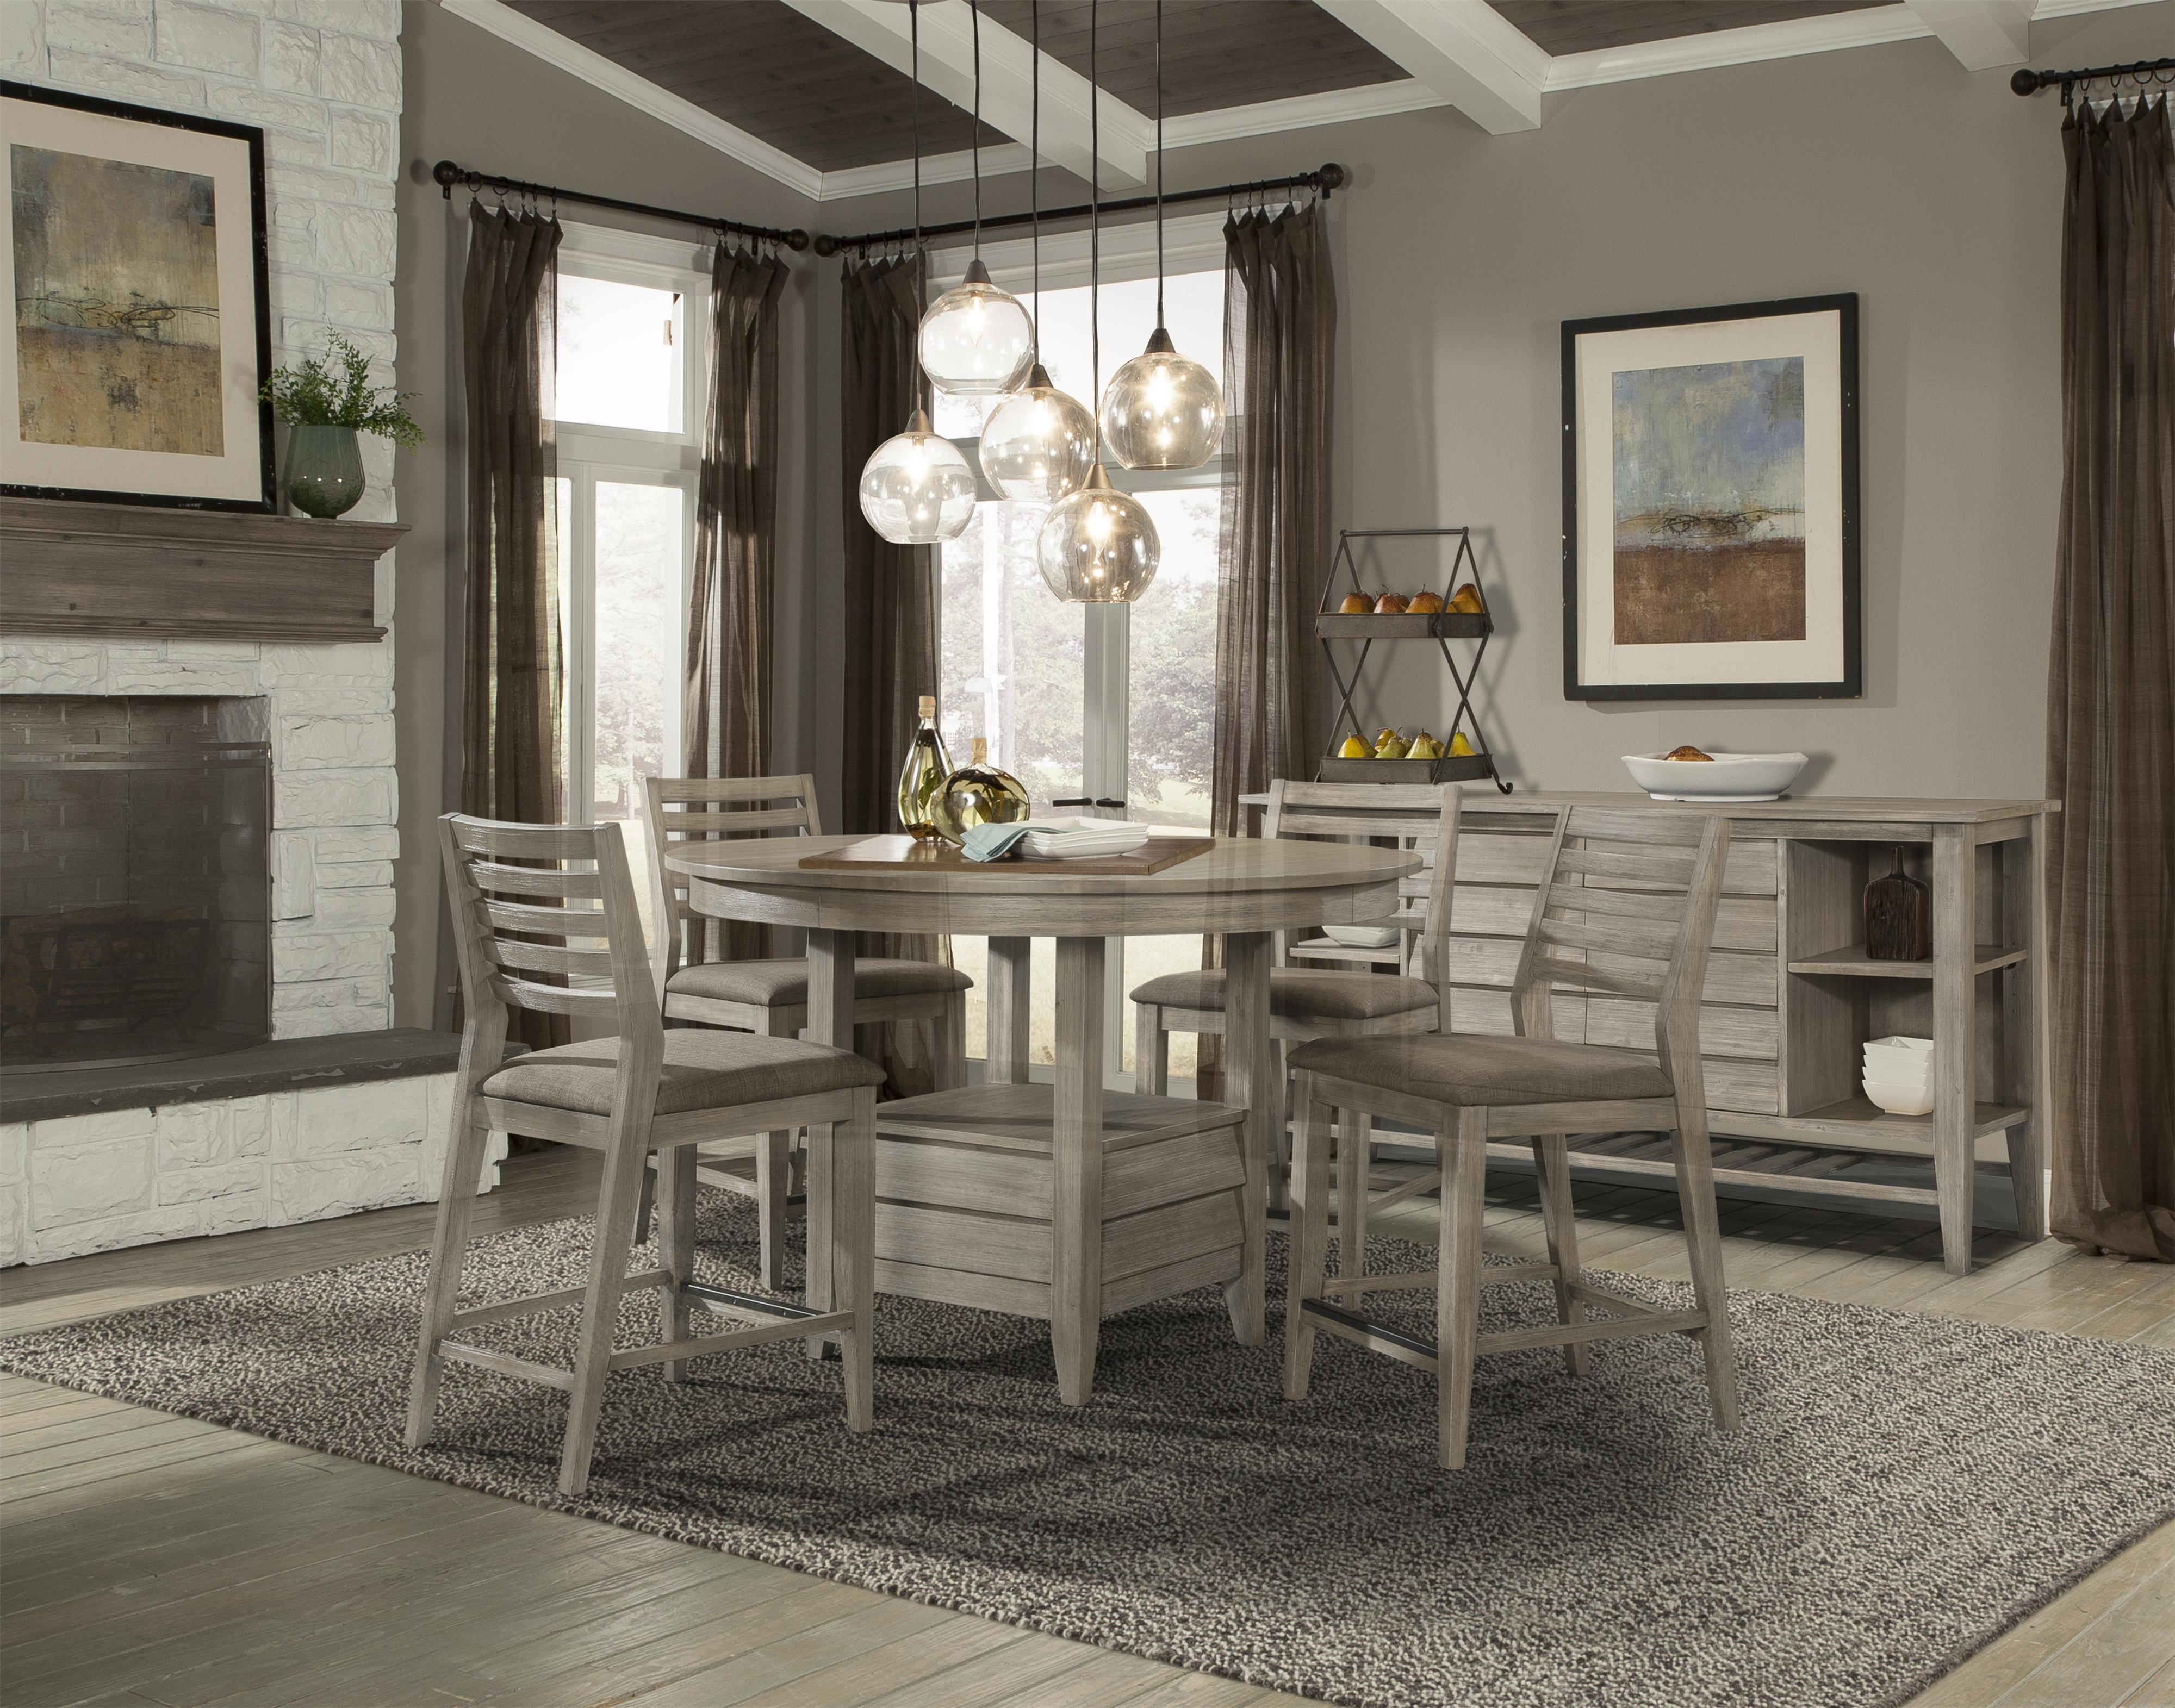 Cresent Fine Furniture Corliss Landing Casual Dining Room Group - Item Number: 5600 Dining Room Group 3